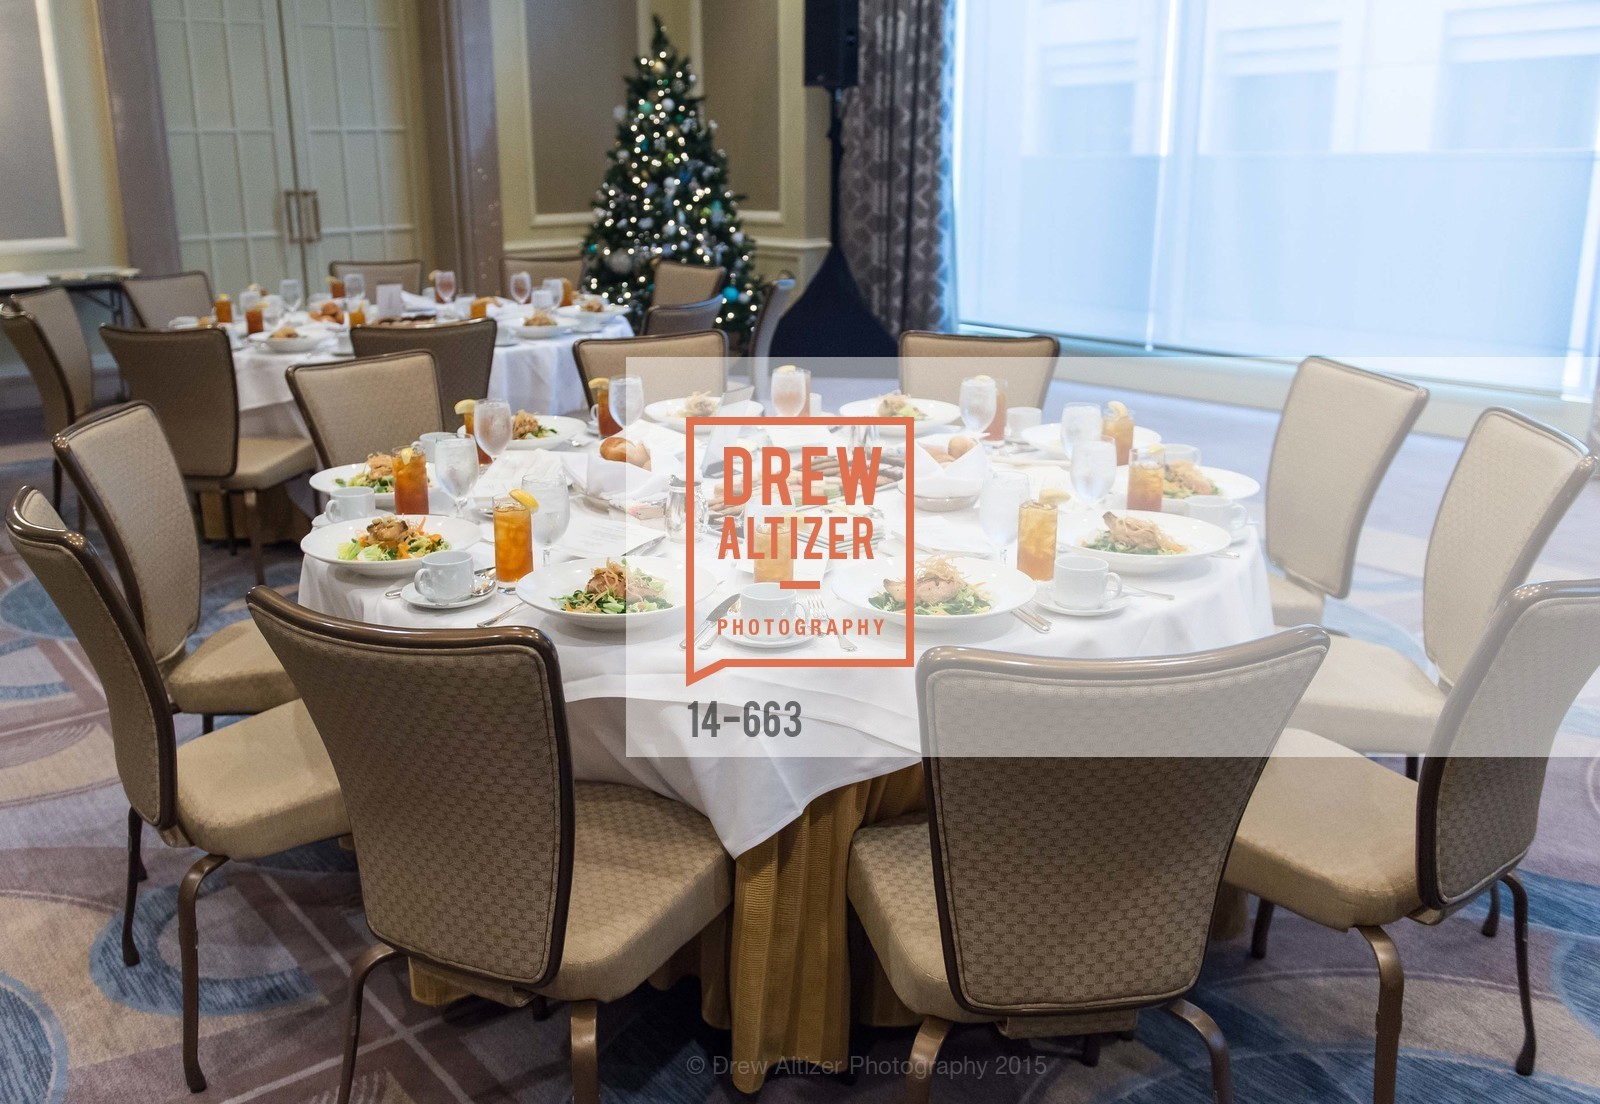 Atmosphere, Senator Barbara Boxer's Women Making History Luncheon, December 18th, 2015, Photo,Drew Altizer, Drew Altizer Photography, full-service agency, private events, San Francisco photographer, photographer california